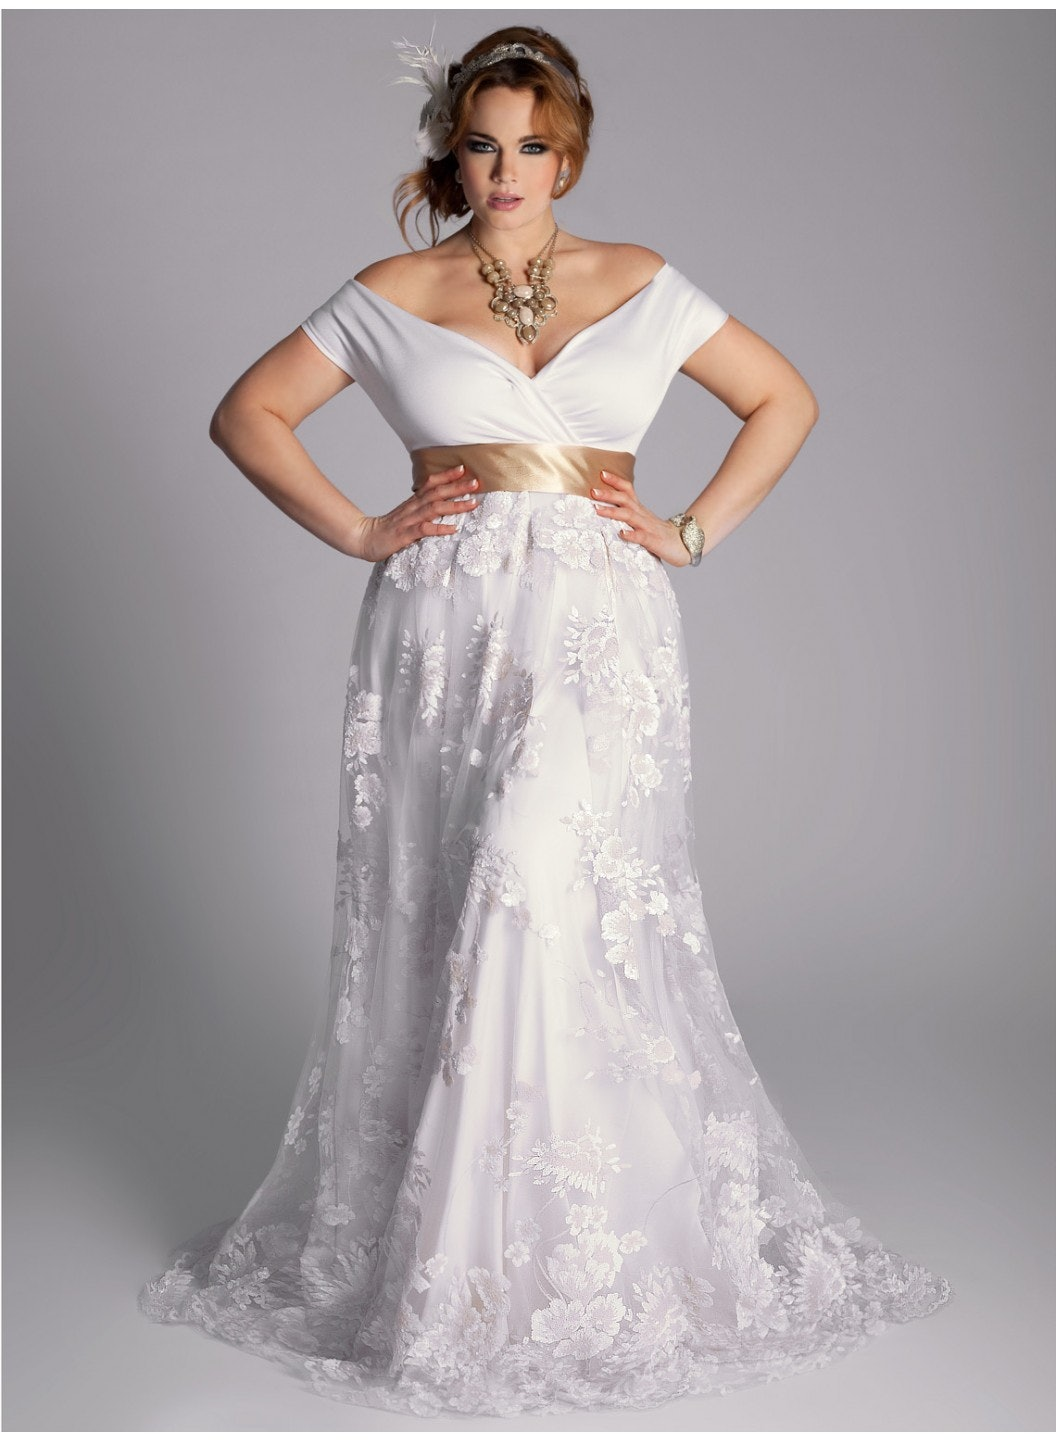 Unique plus size wedding dresses with sleeves - 25 Stunning Plus Size Wedding Dresses For Every Style Of Nuptial Affair